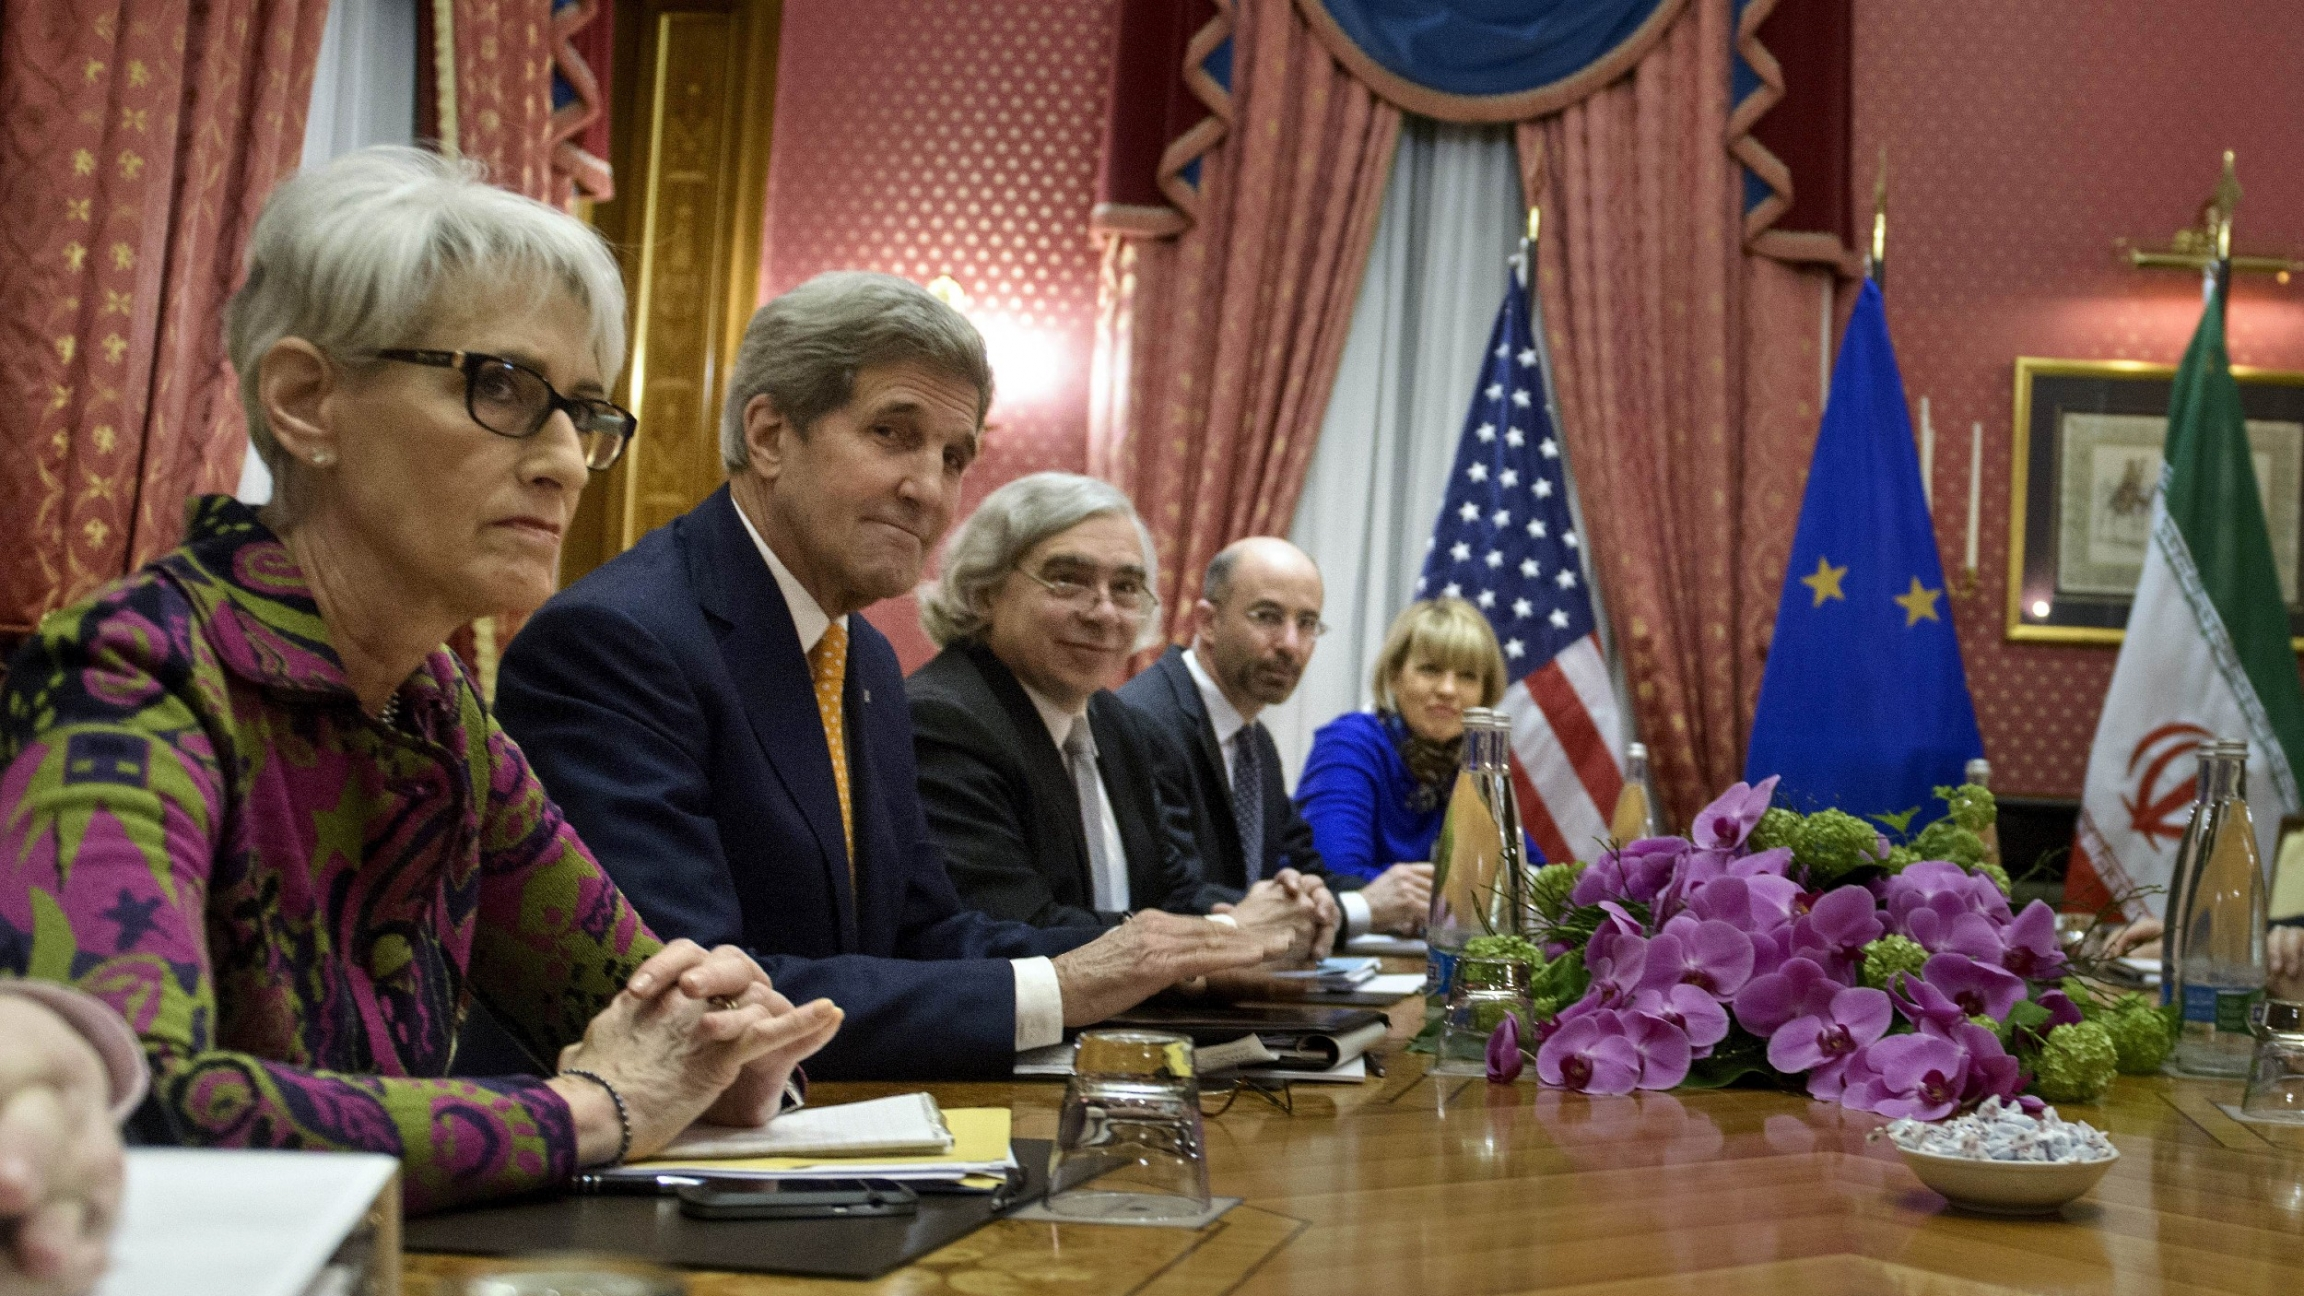 Former US Under Secretary for Political AffairsWendySherman, US Secretary of State John Kerry, US Secretary of Energy Ernest Moniz, National Security Council point person on the Middle East Robert Malley and European Union Political Director Helga Schmi